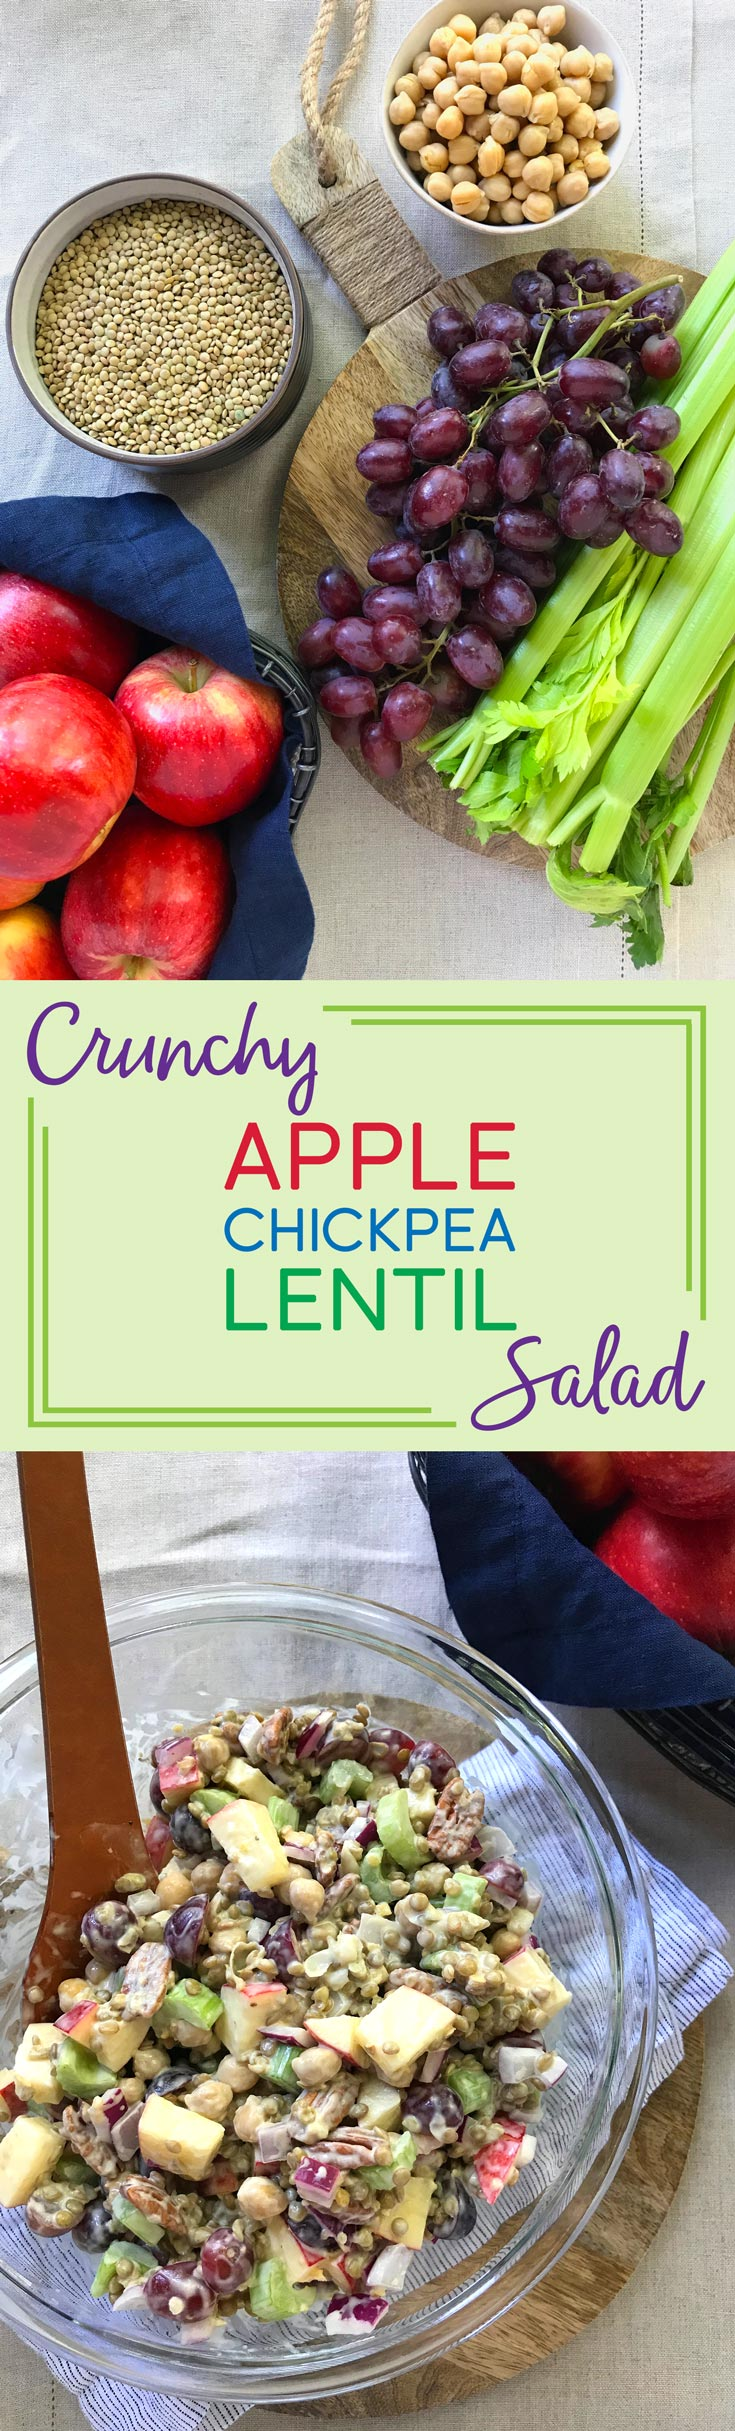 Reads Crunchy Apple Chickpea Lentil Salad and shows the salad ingredients and finished salad surrounded by grapes and apples.